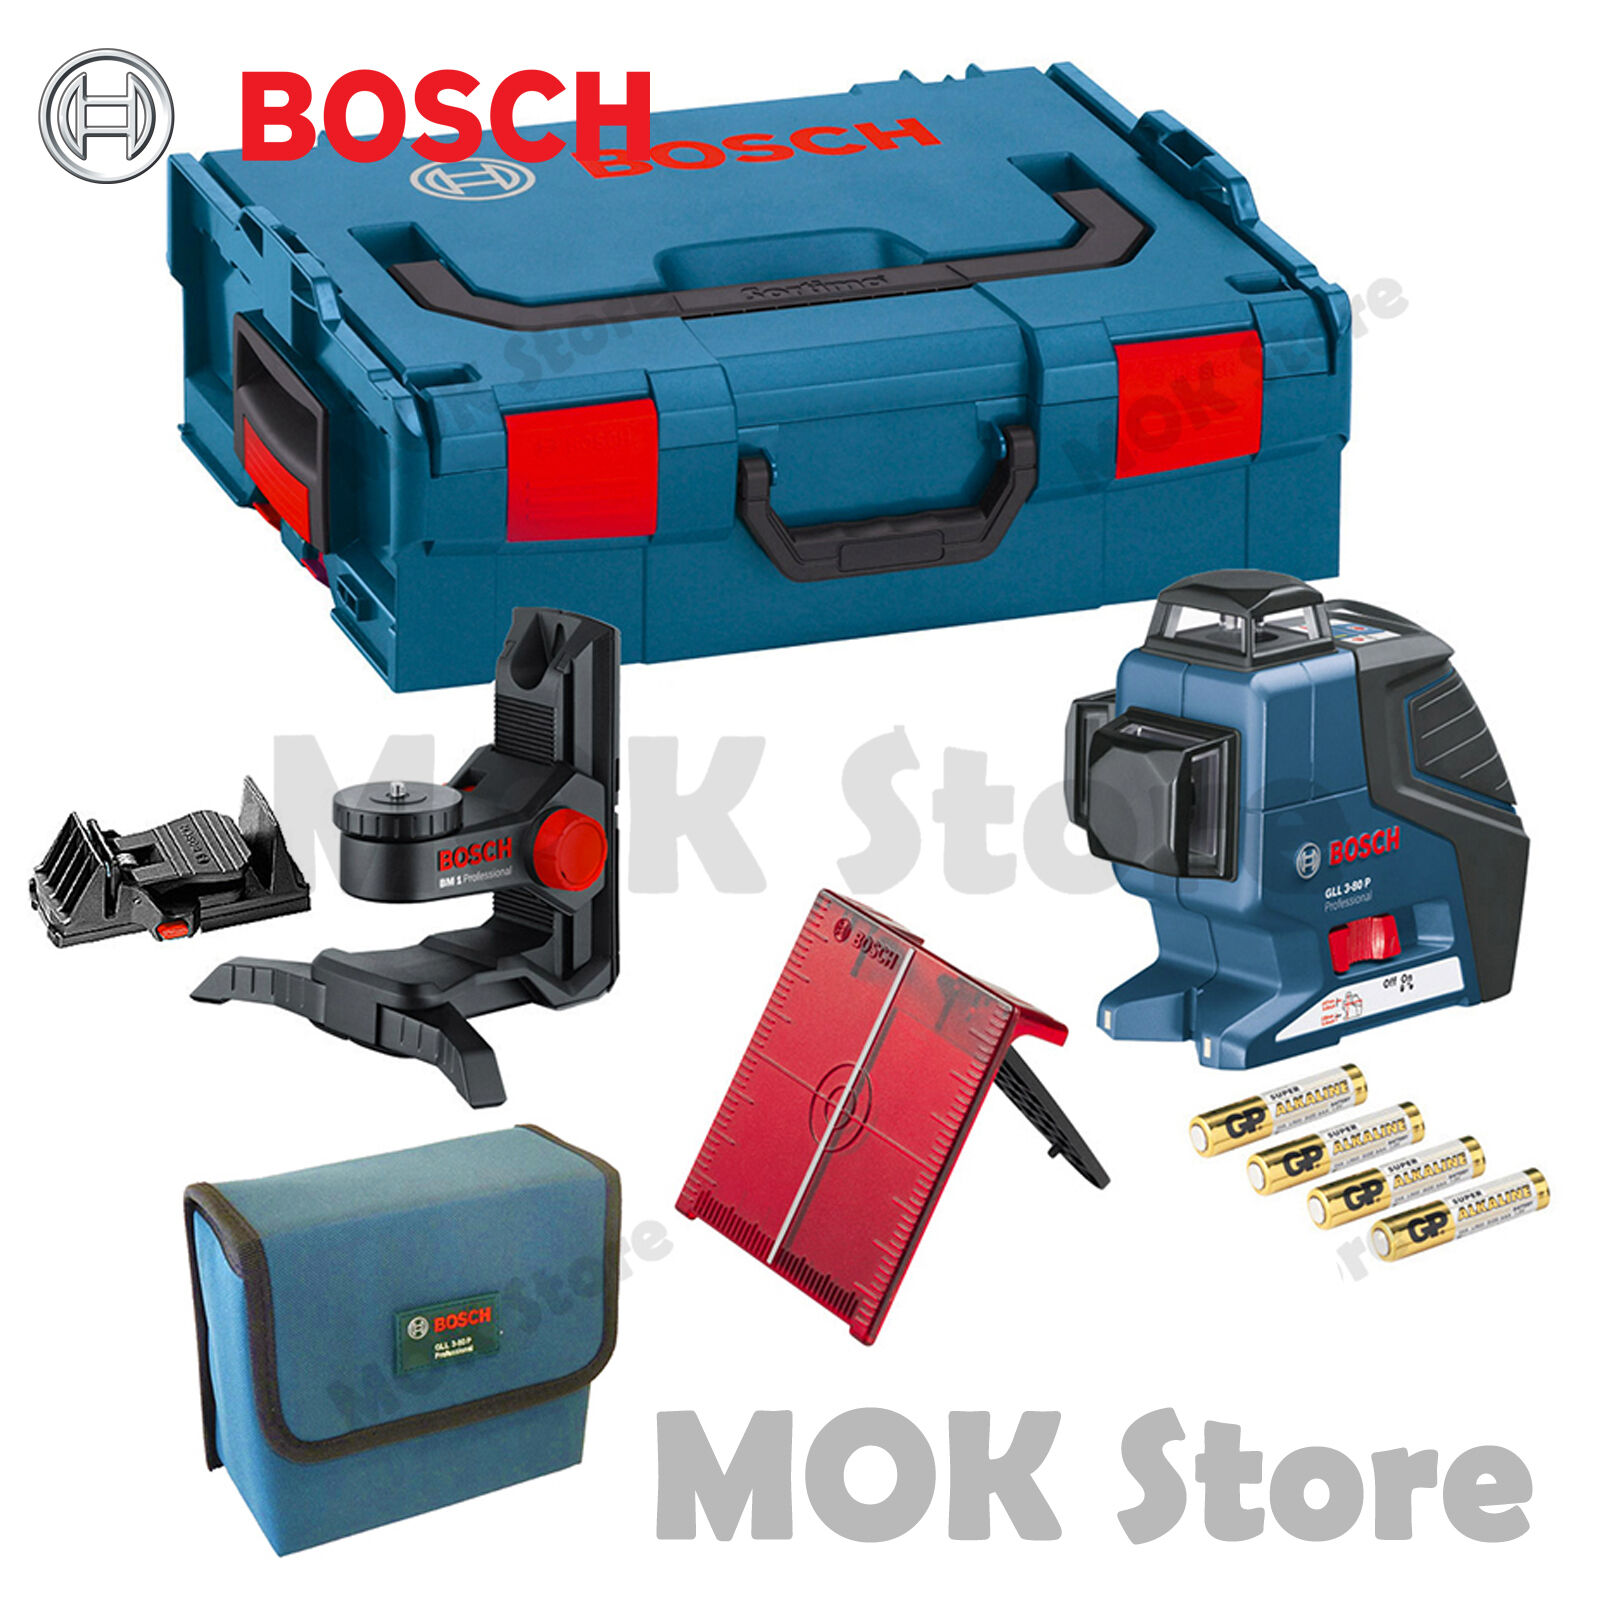 bosch gll3-80p 360° 3-plane leveling alignment line laser level